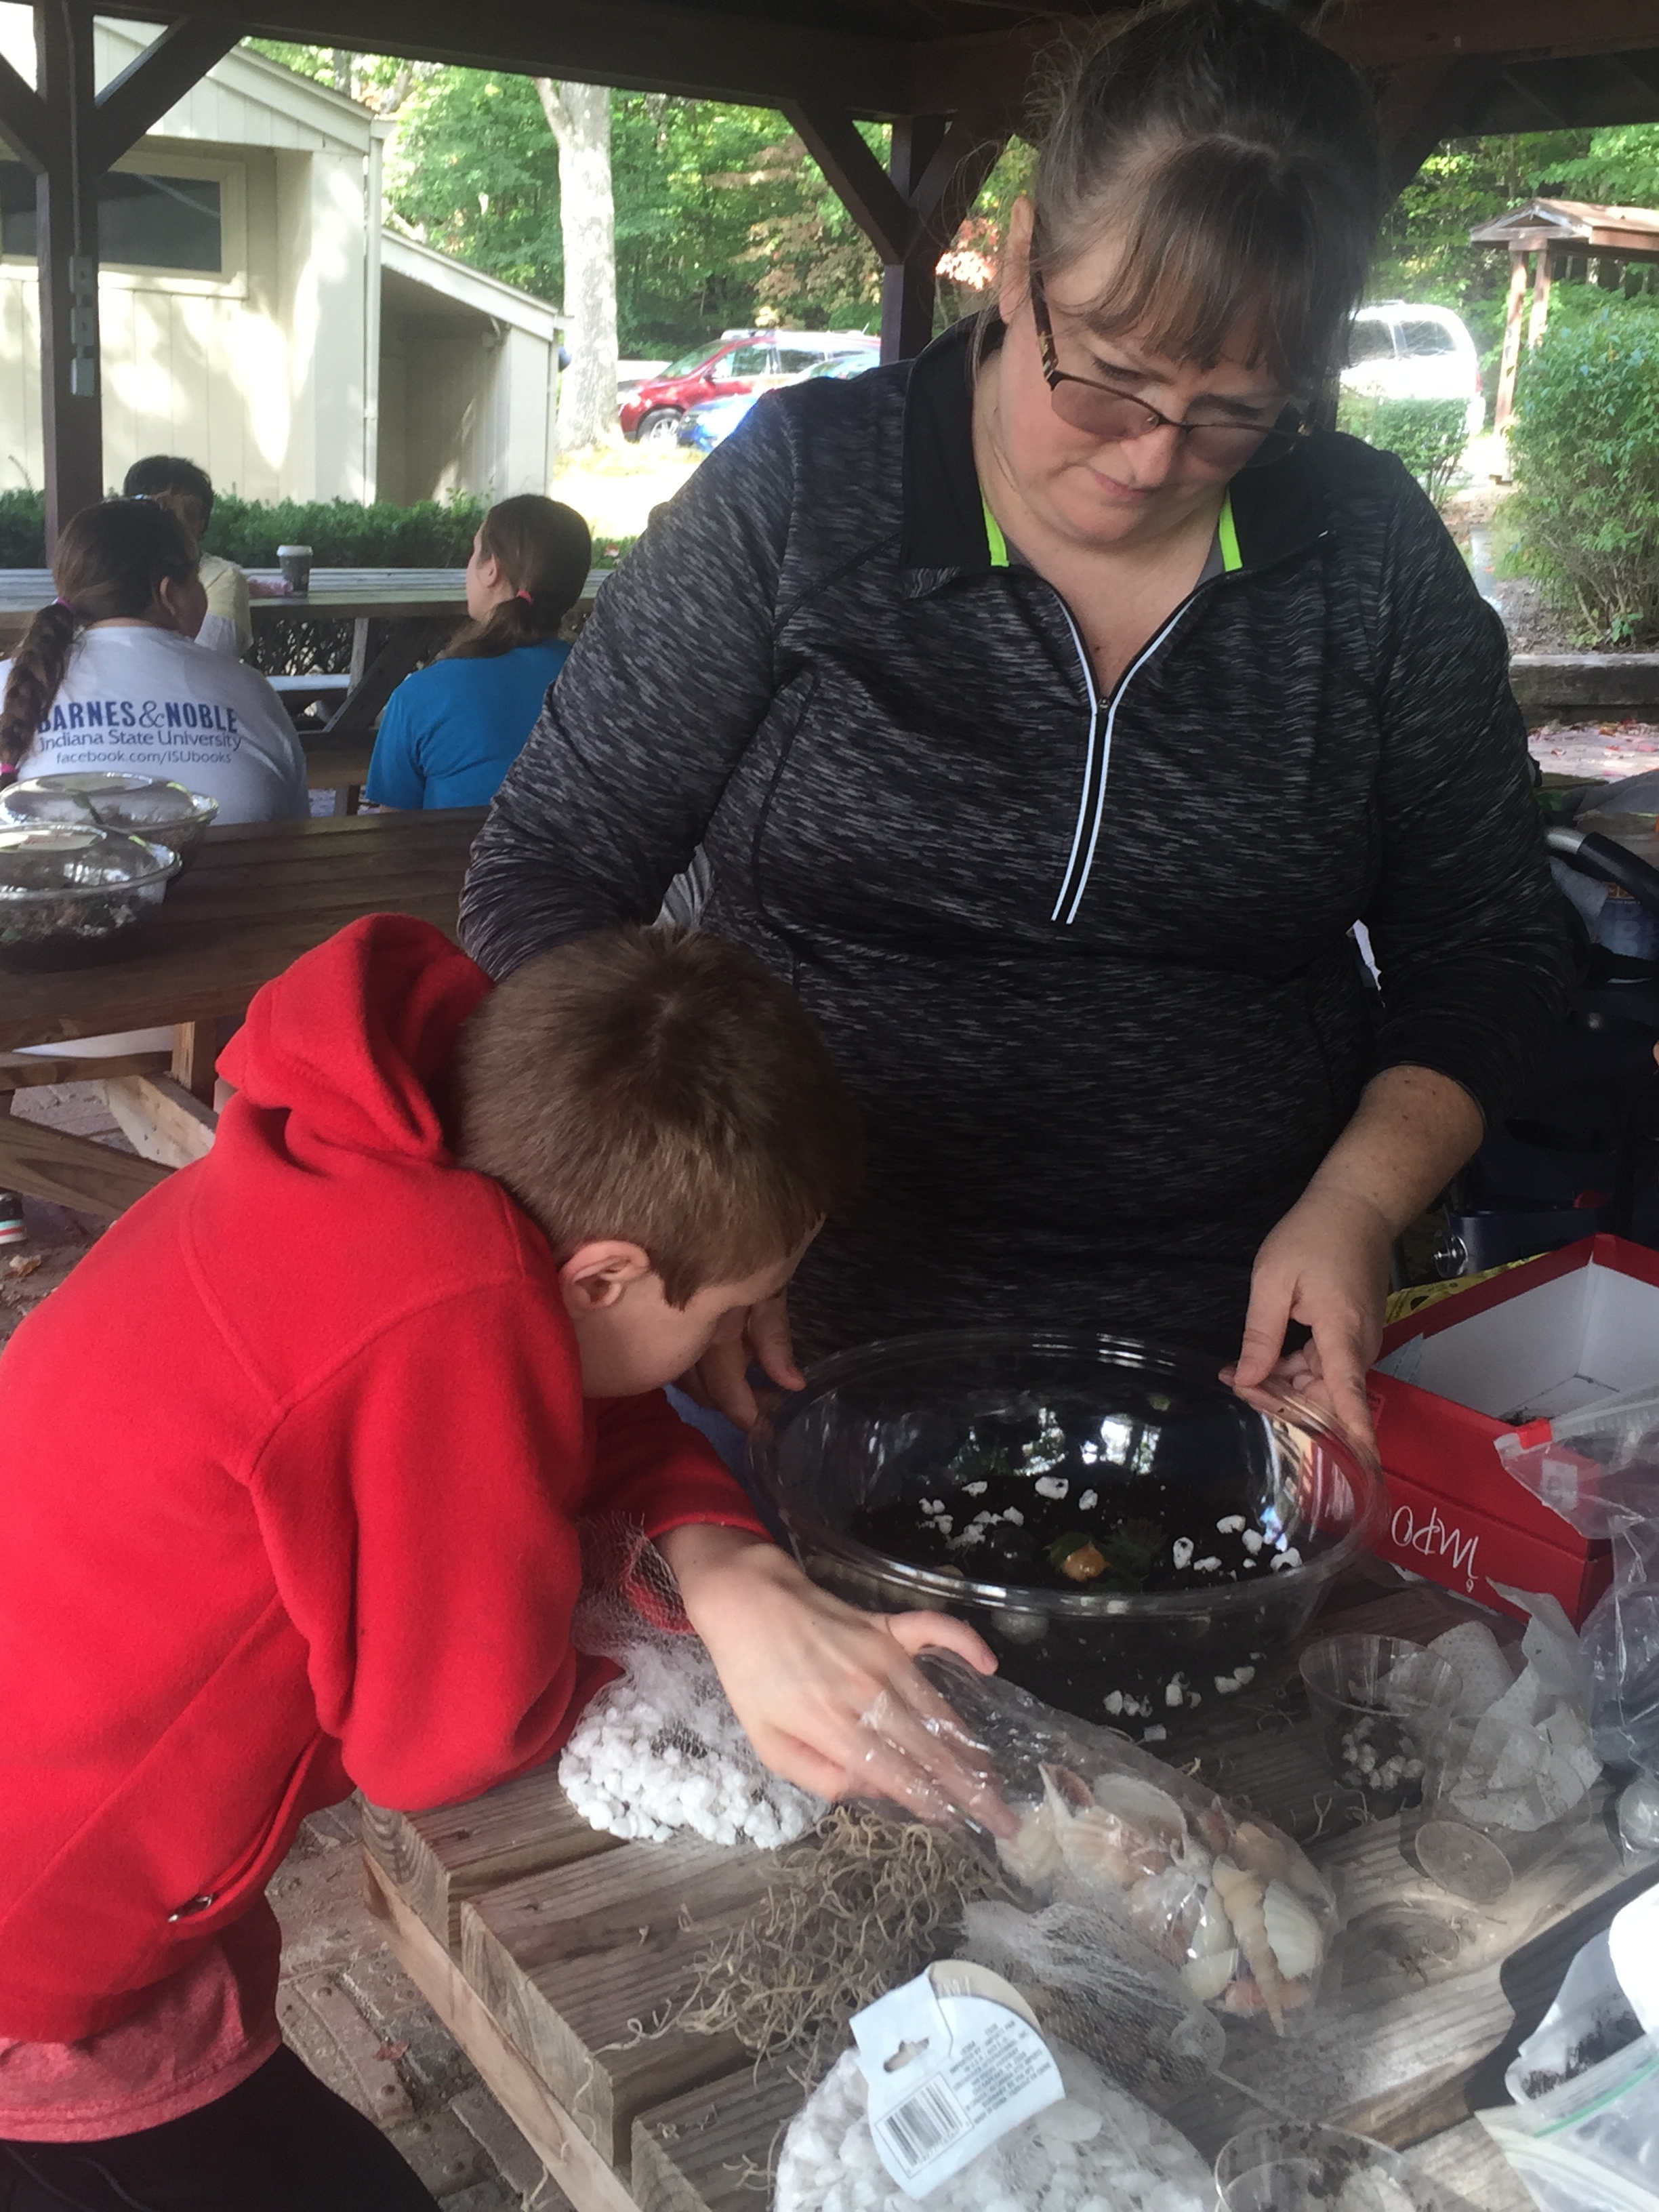 Young man in red hoodie making a planter out of a clear bowl with help from adult woman.